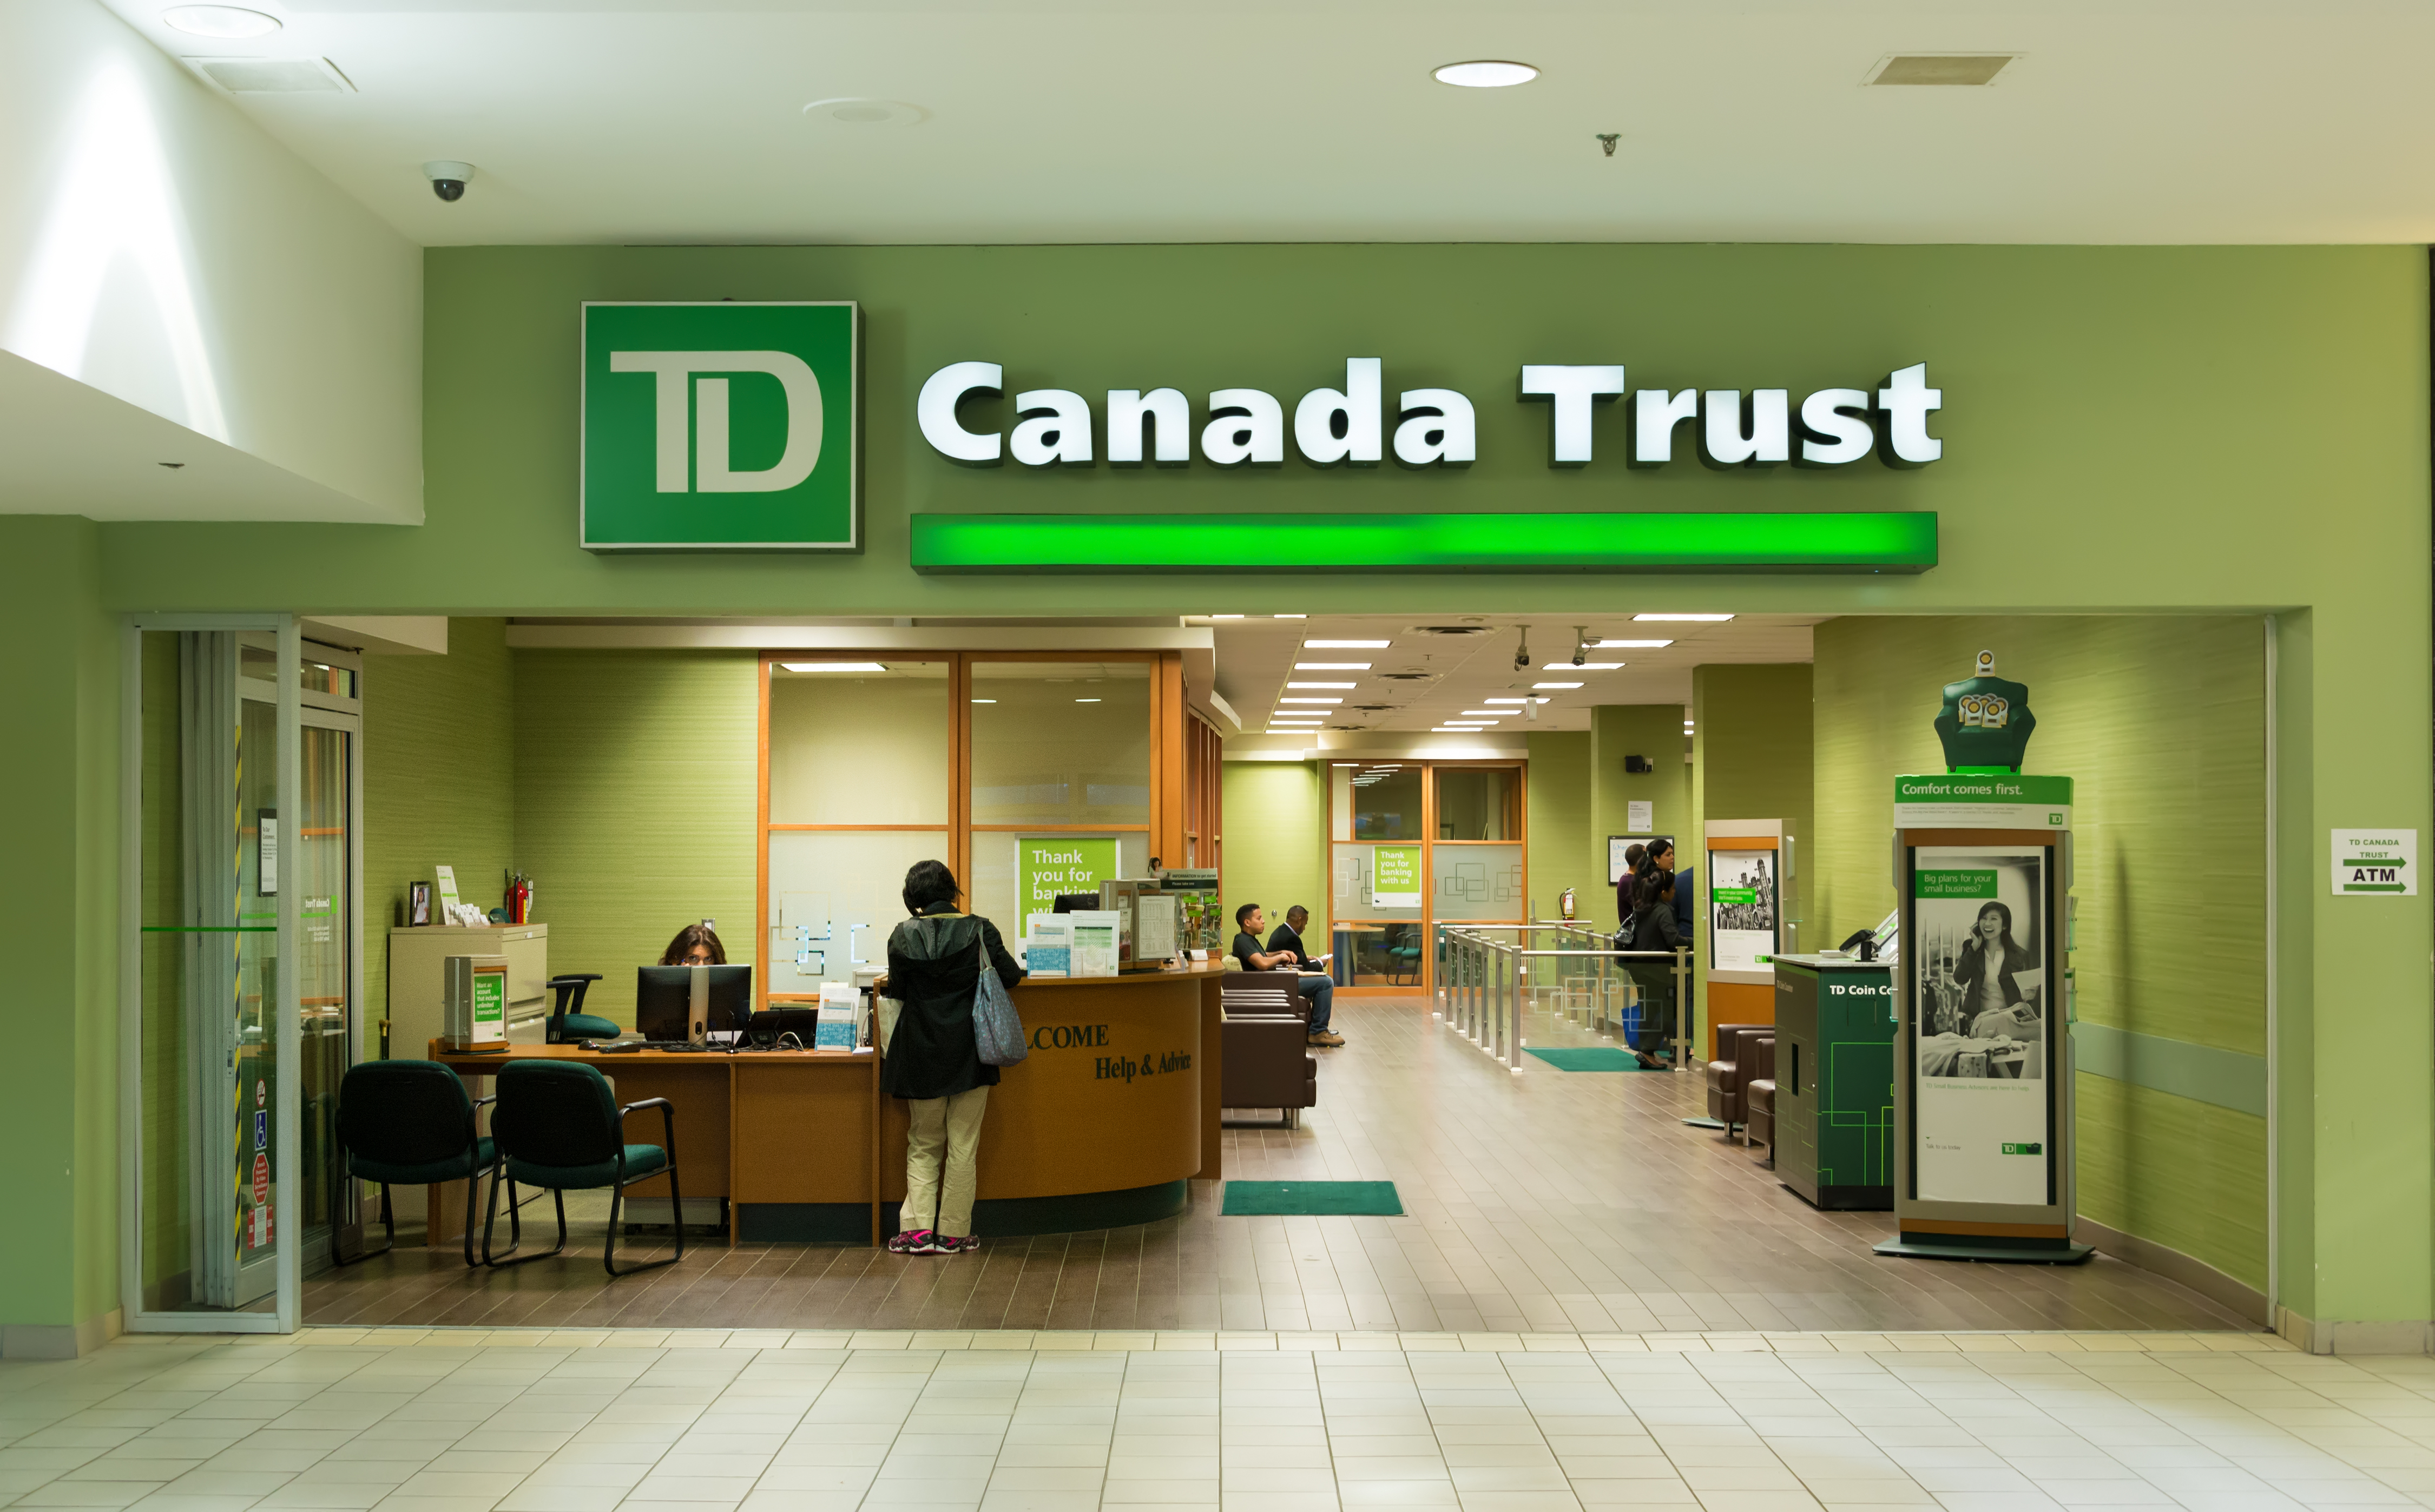 TD Bank branch entrance. The Toronto-Dominion Bank is a